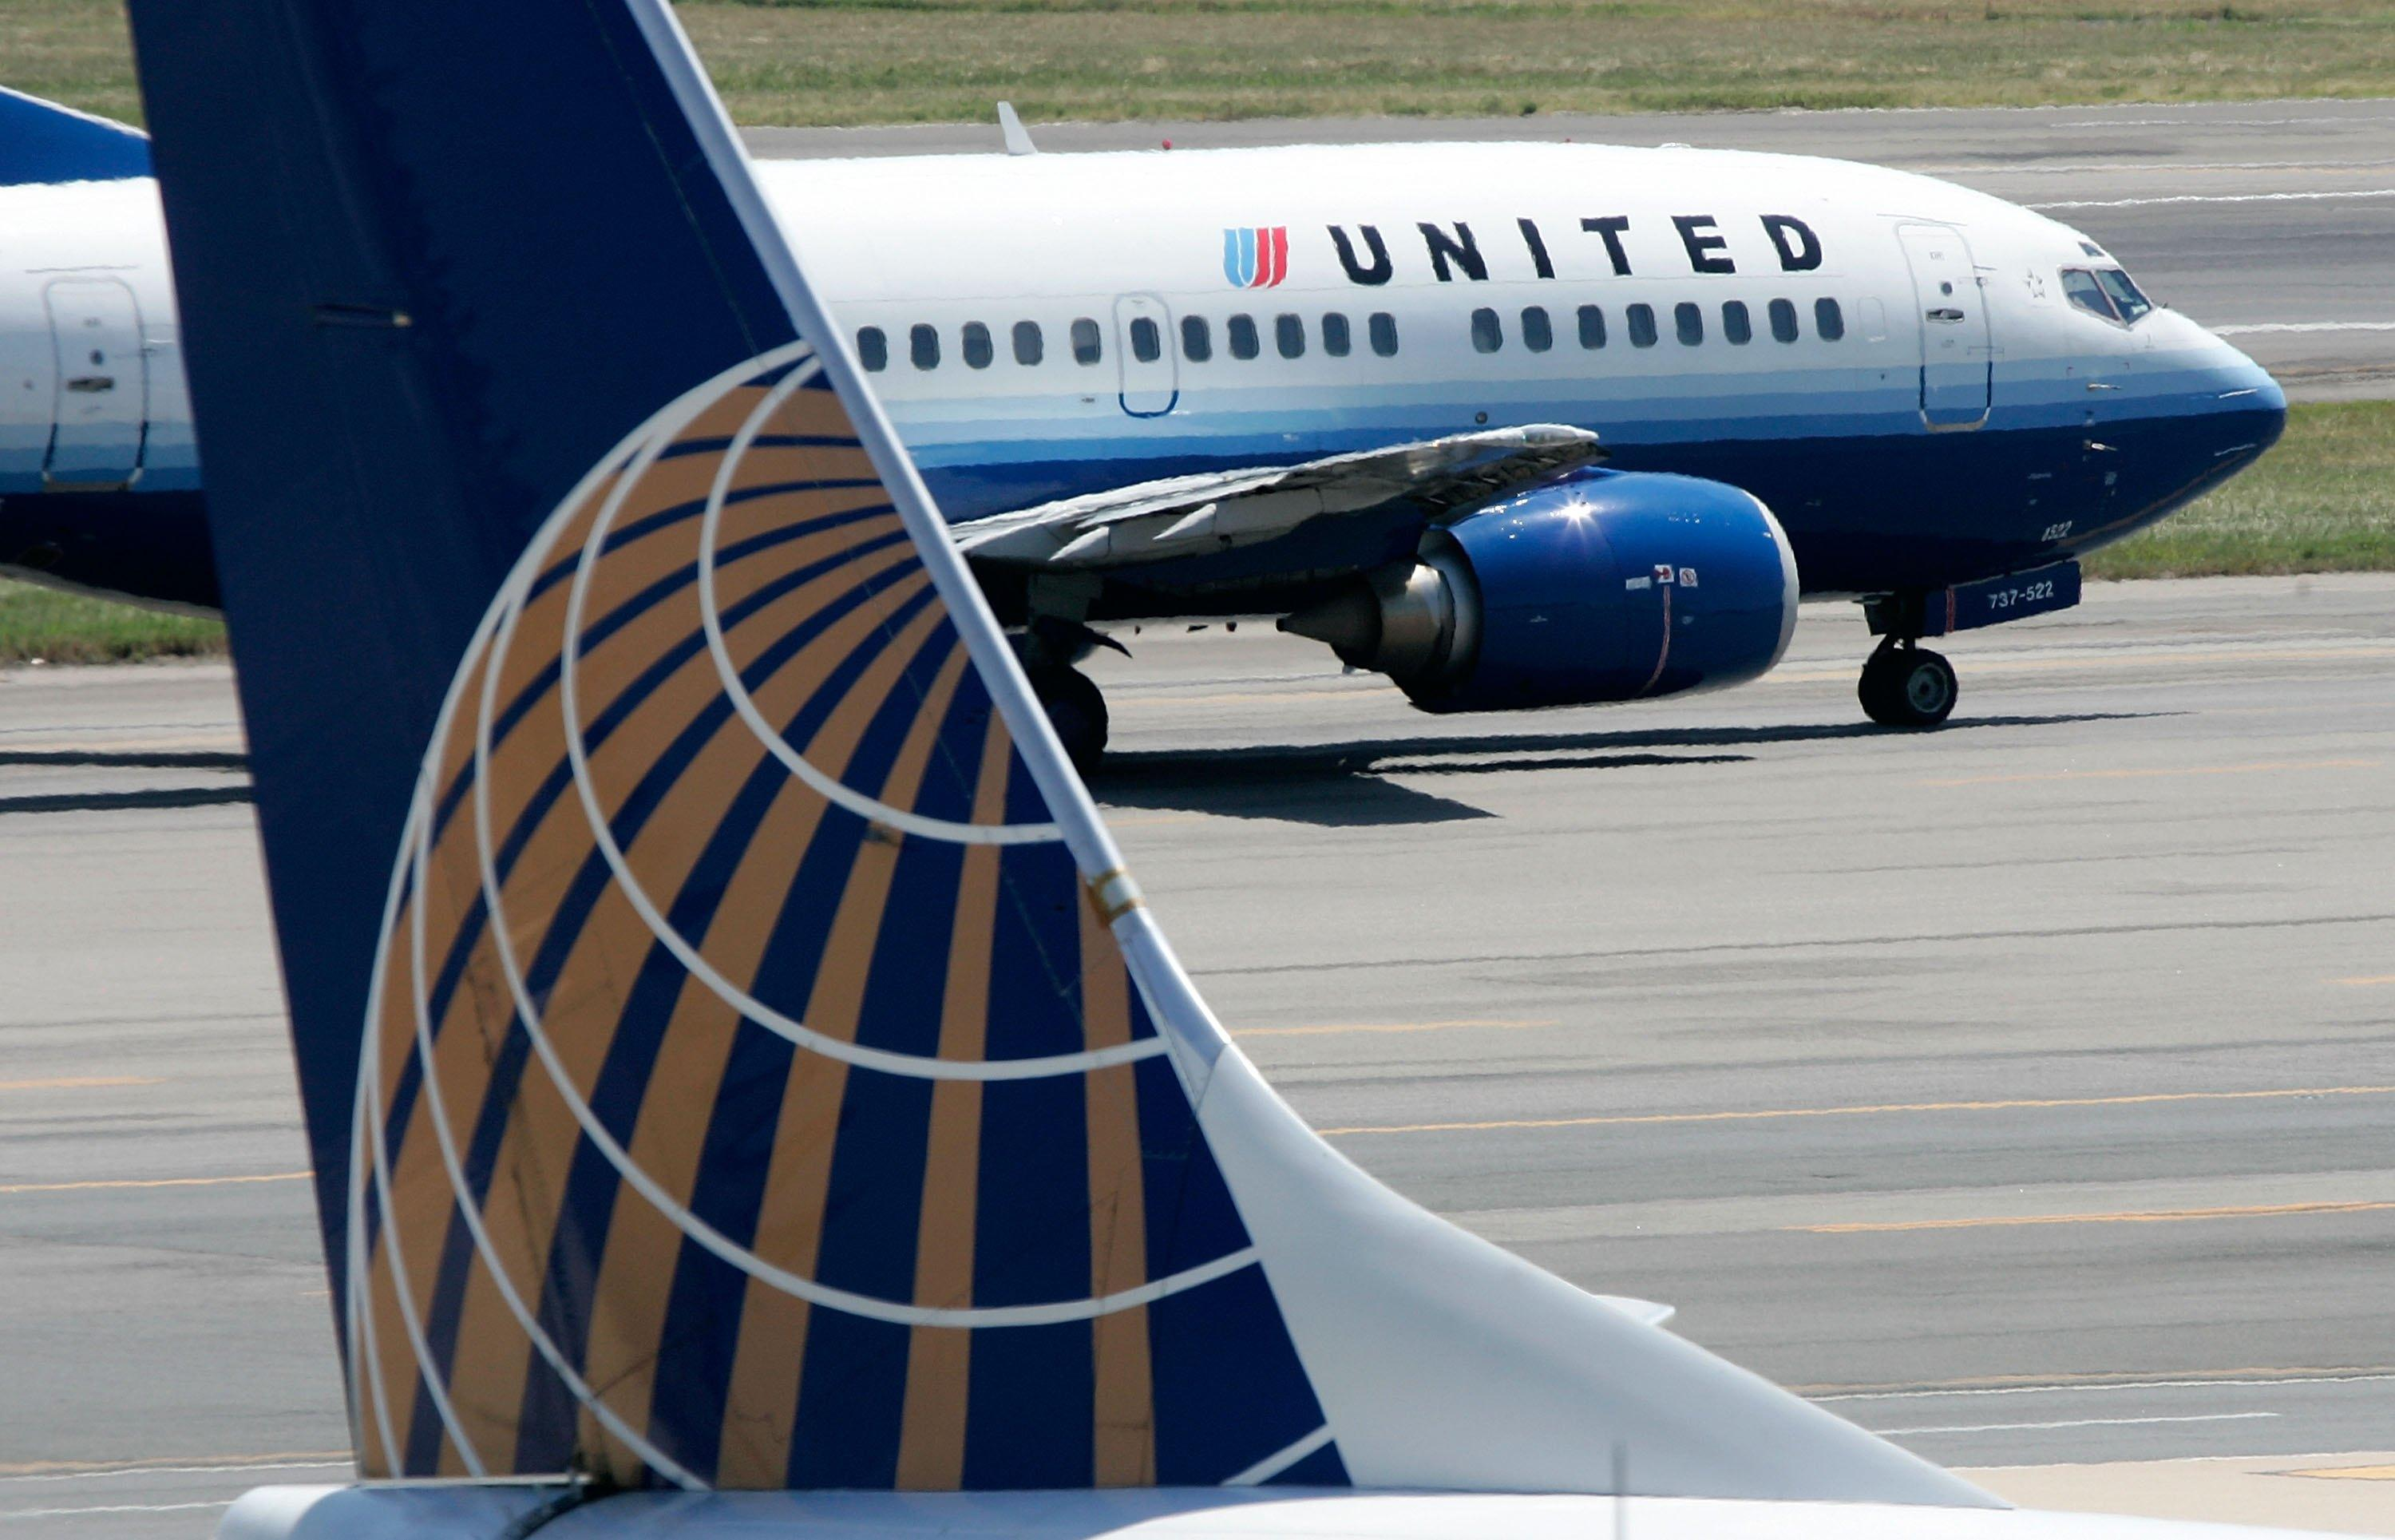 'Drunk' United Airlines stewardess disrupts flight with foul-mouthed rant